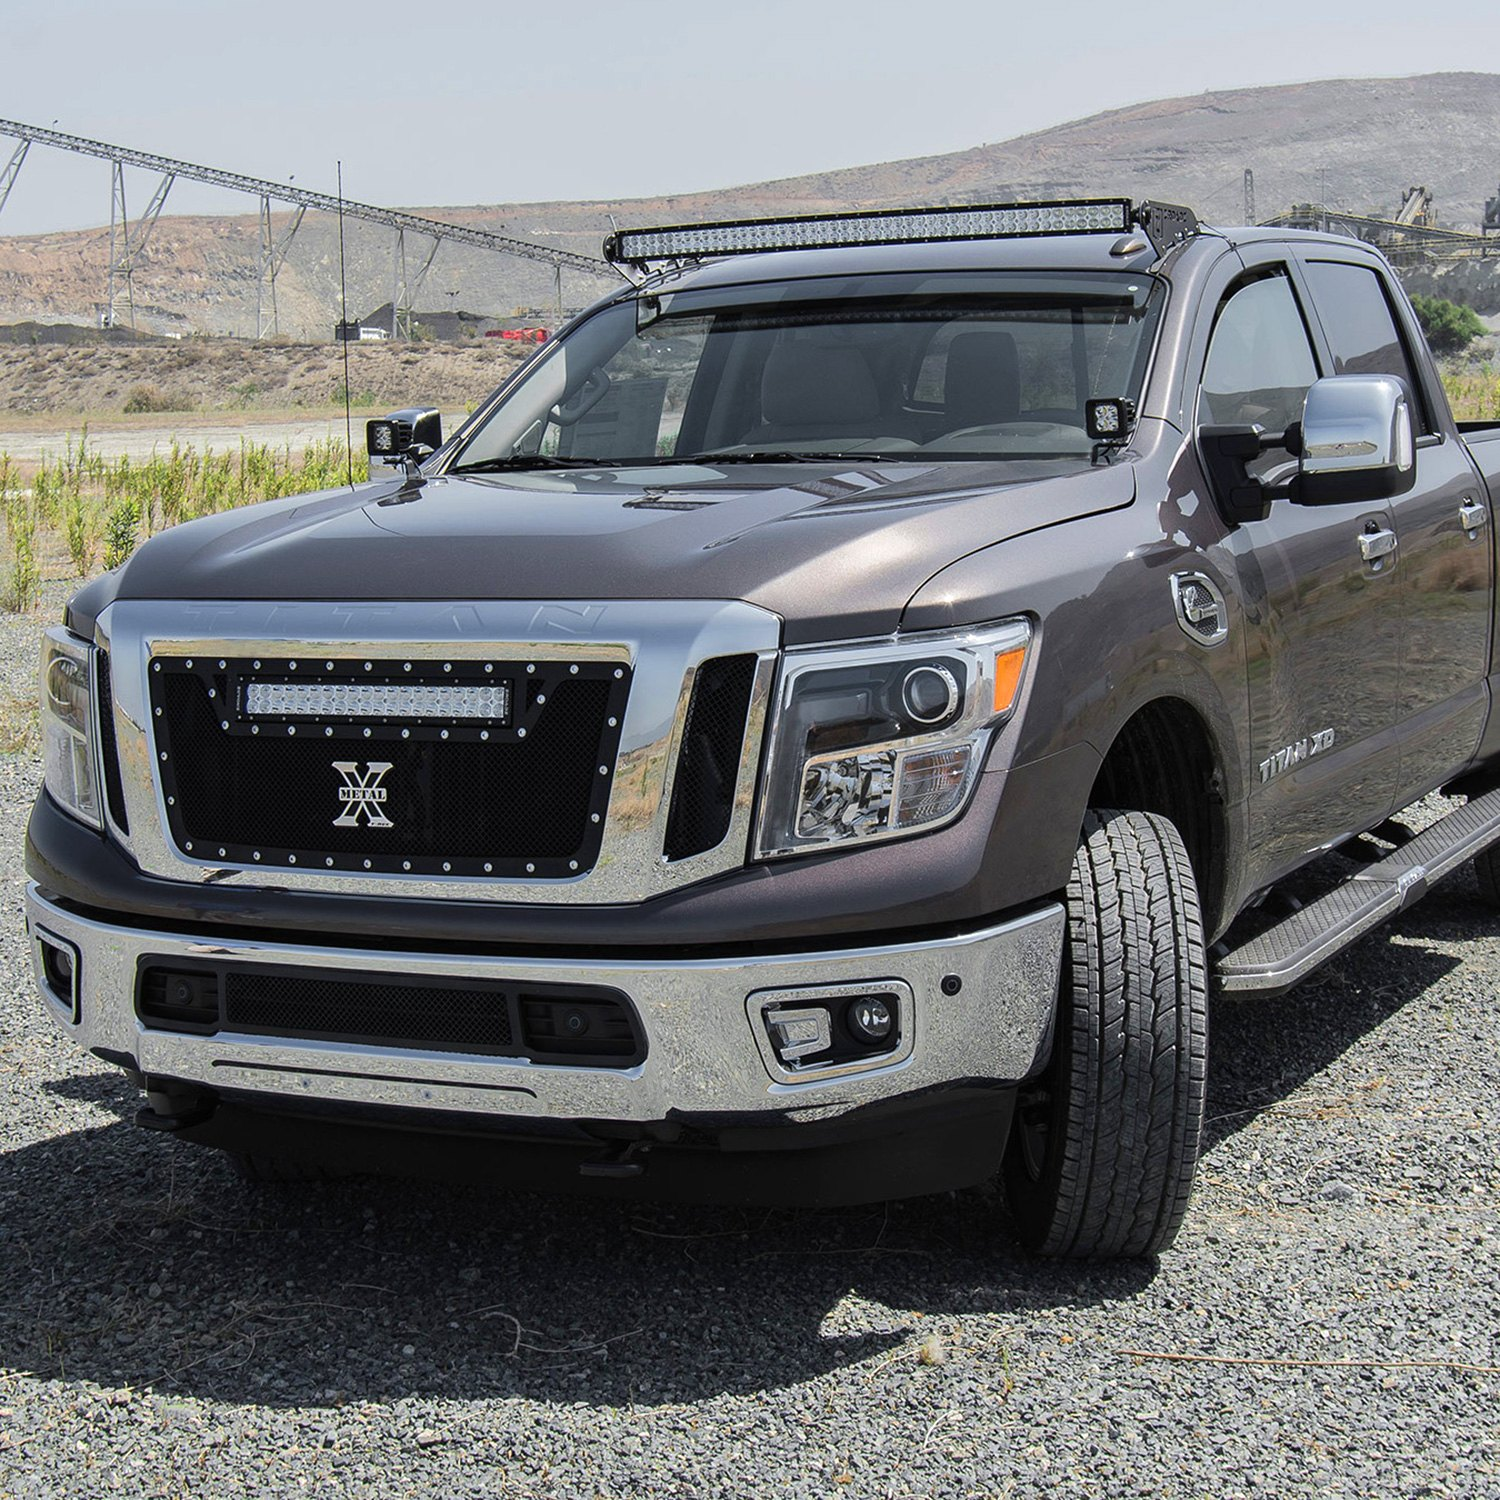 Nissan Titan XD 2016 Roof Mounted Curved LED